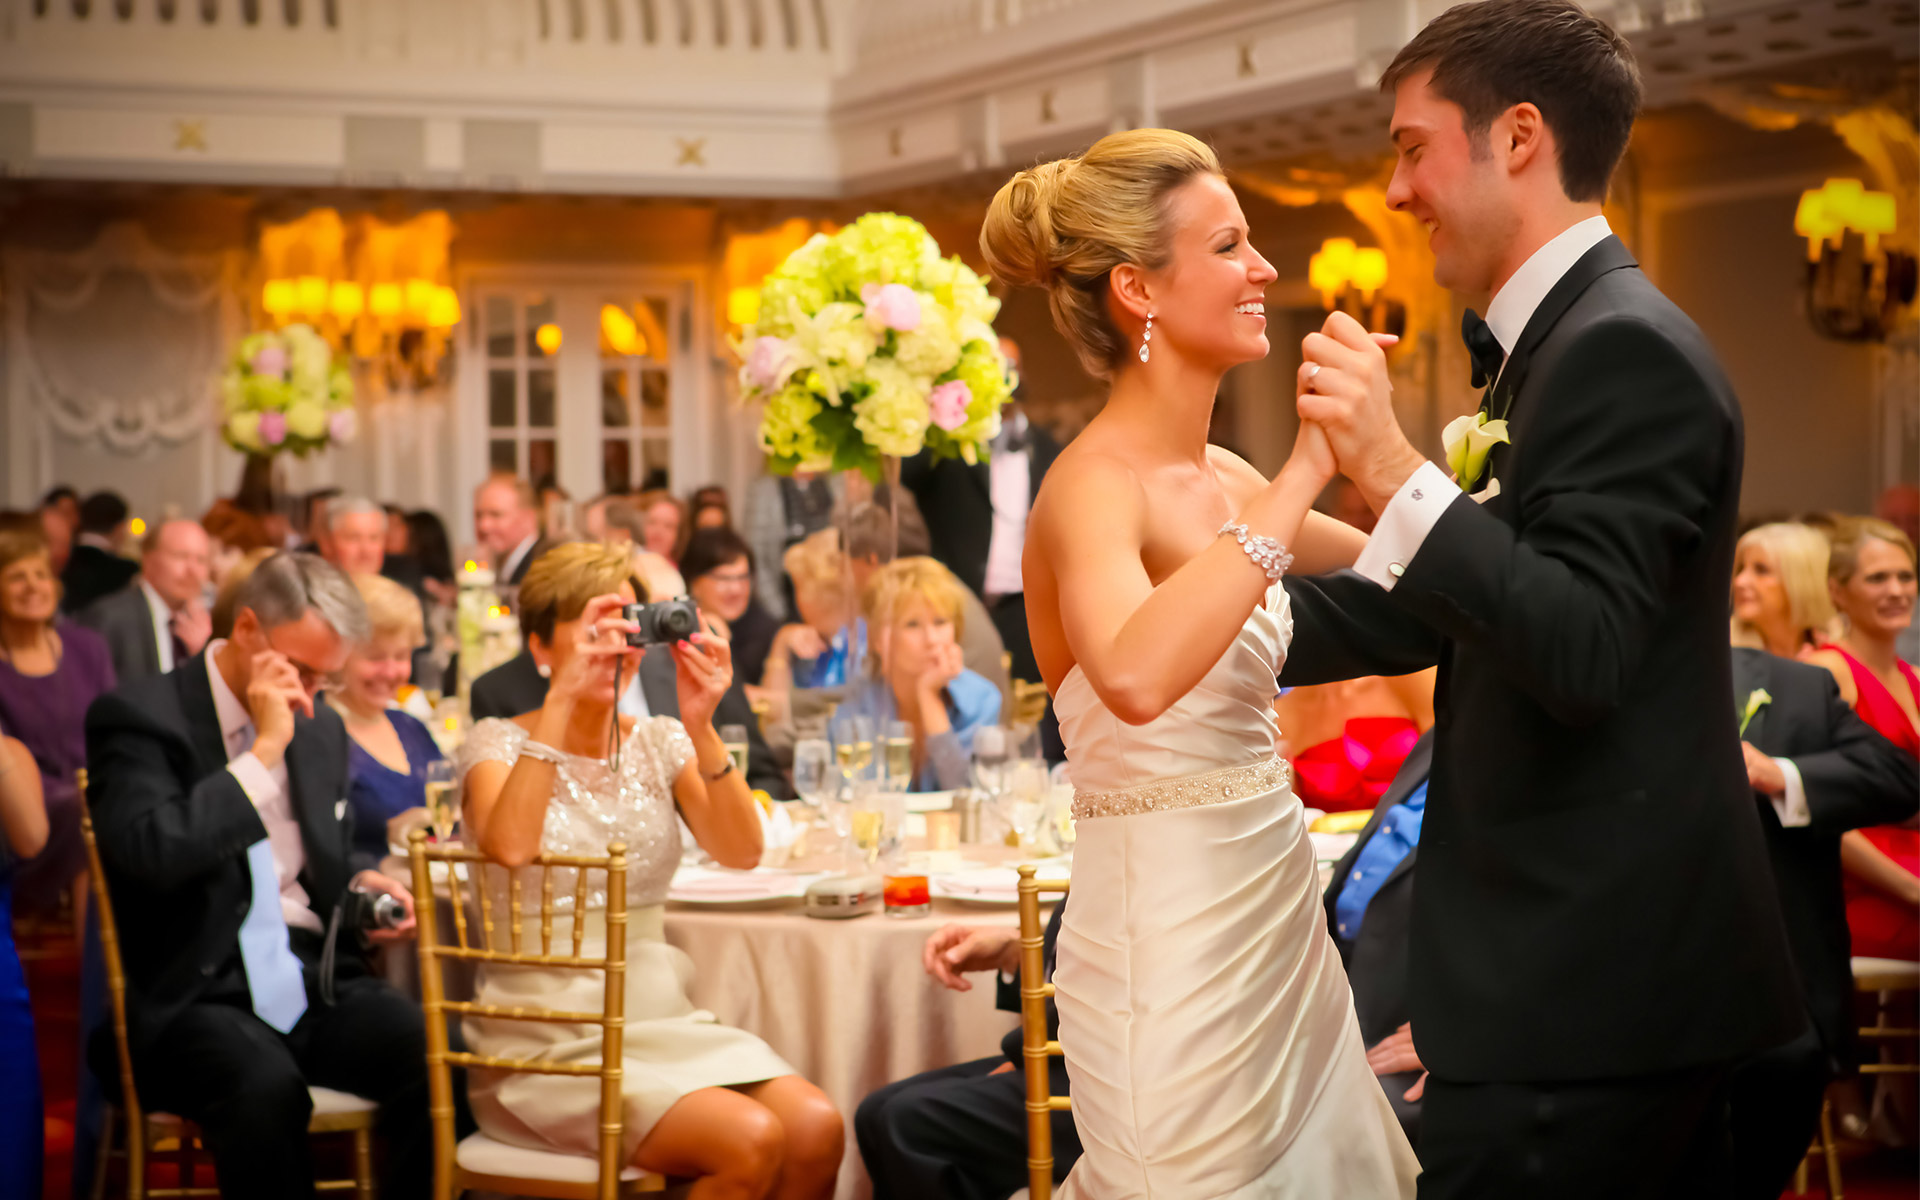 PLANNING YOUR WEDDING DAY YOUR WAY